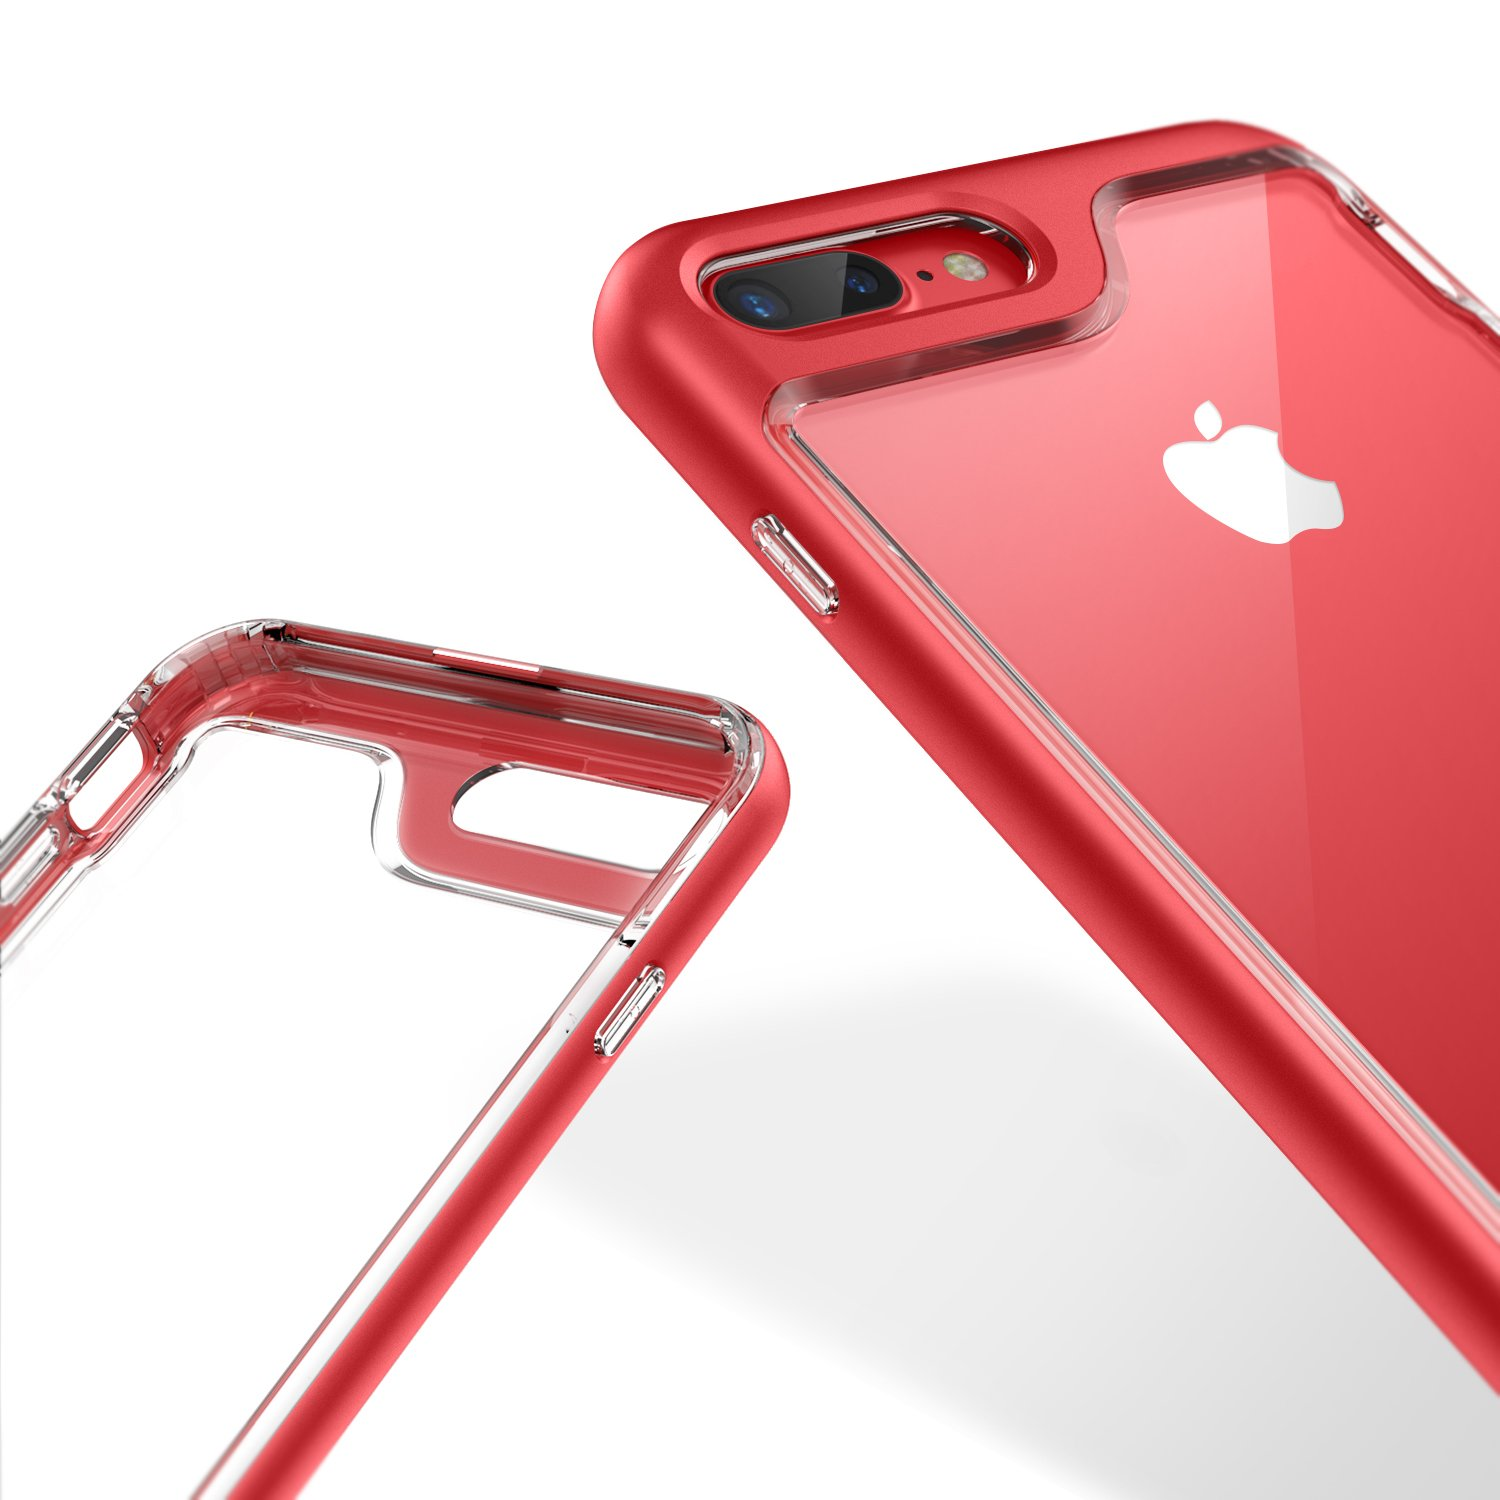 5393ebd3366 Caseology Skyfall Series iPhone 8 Plus Case - Red - Unboxed